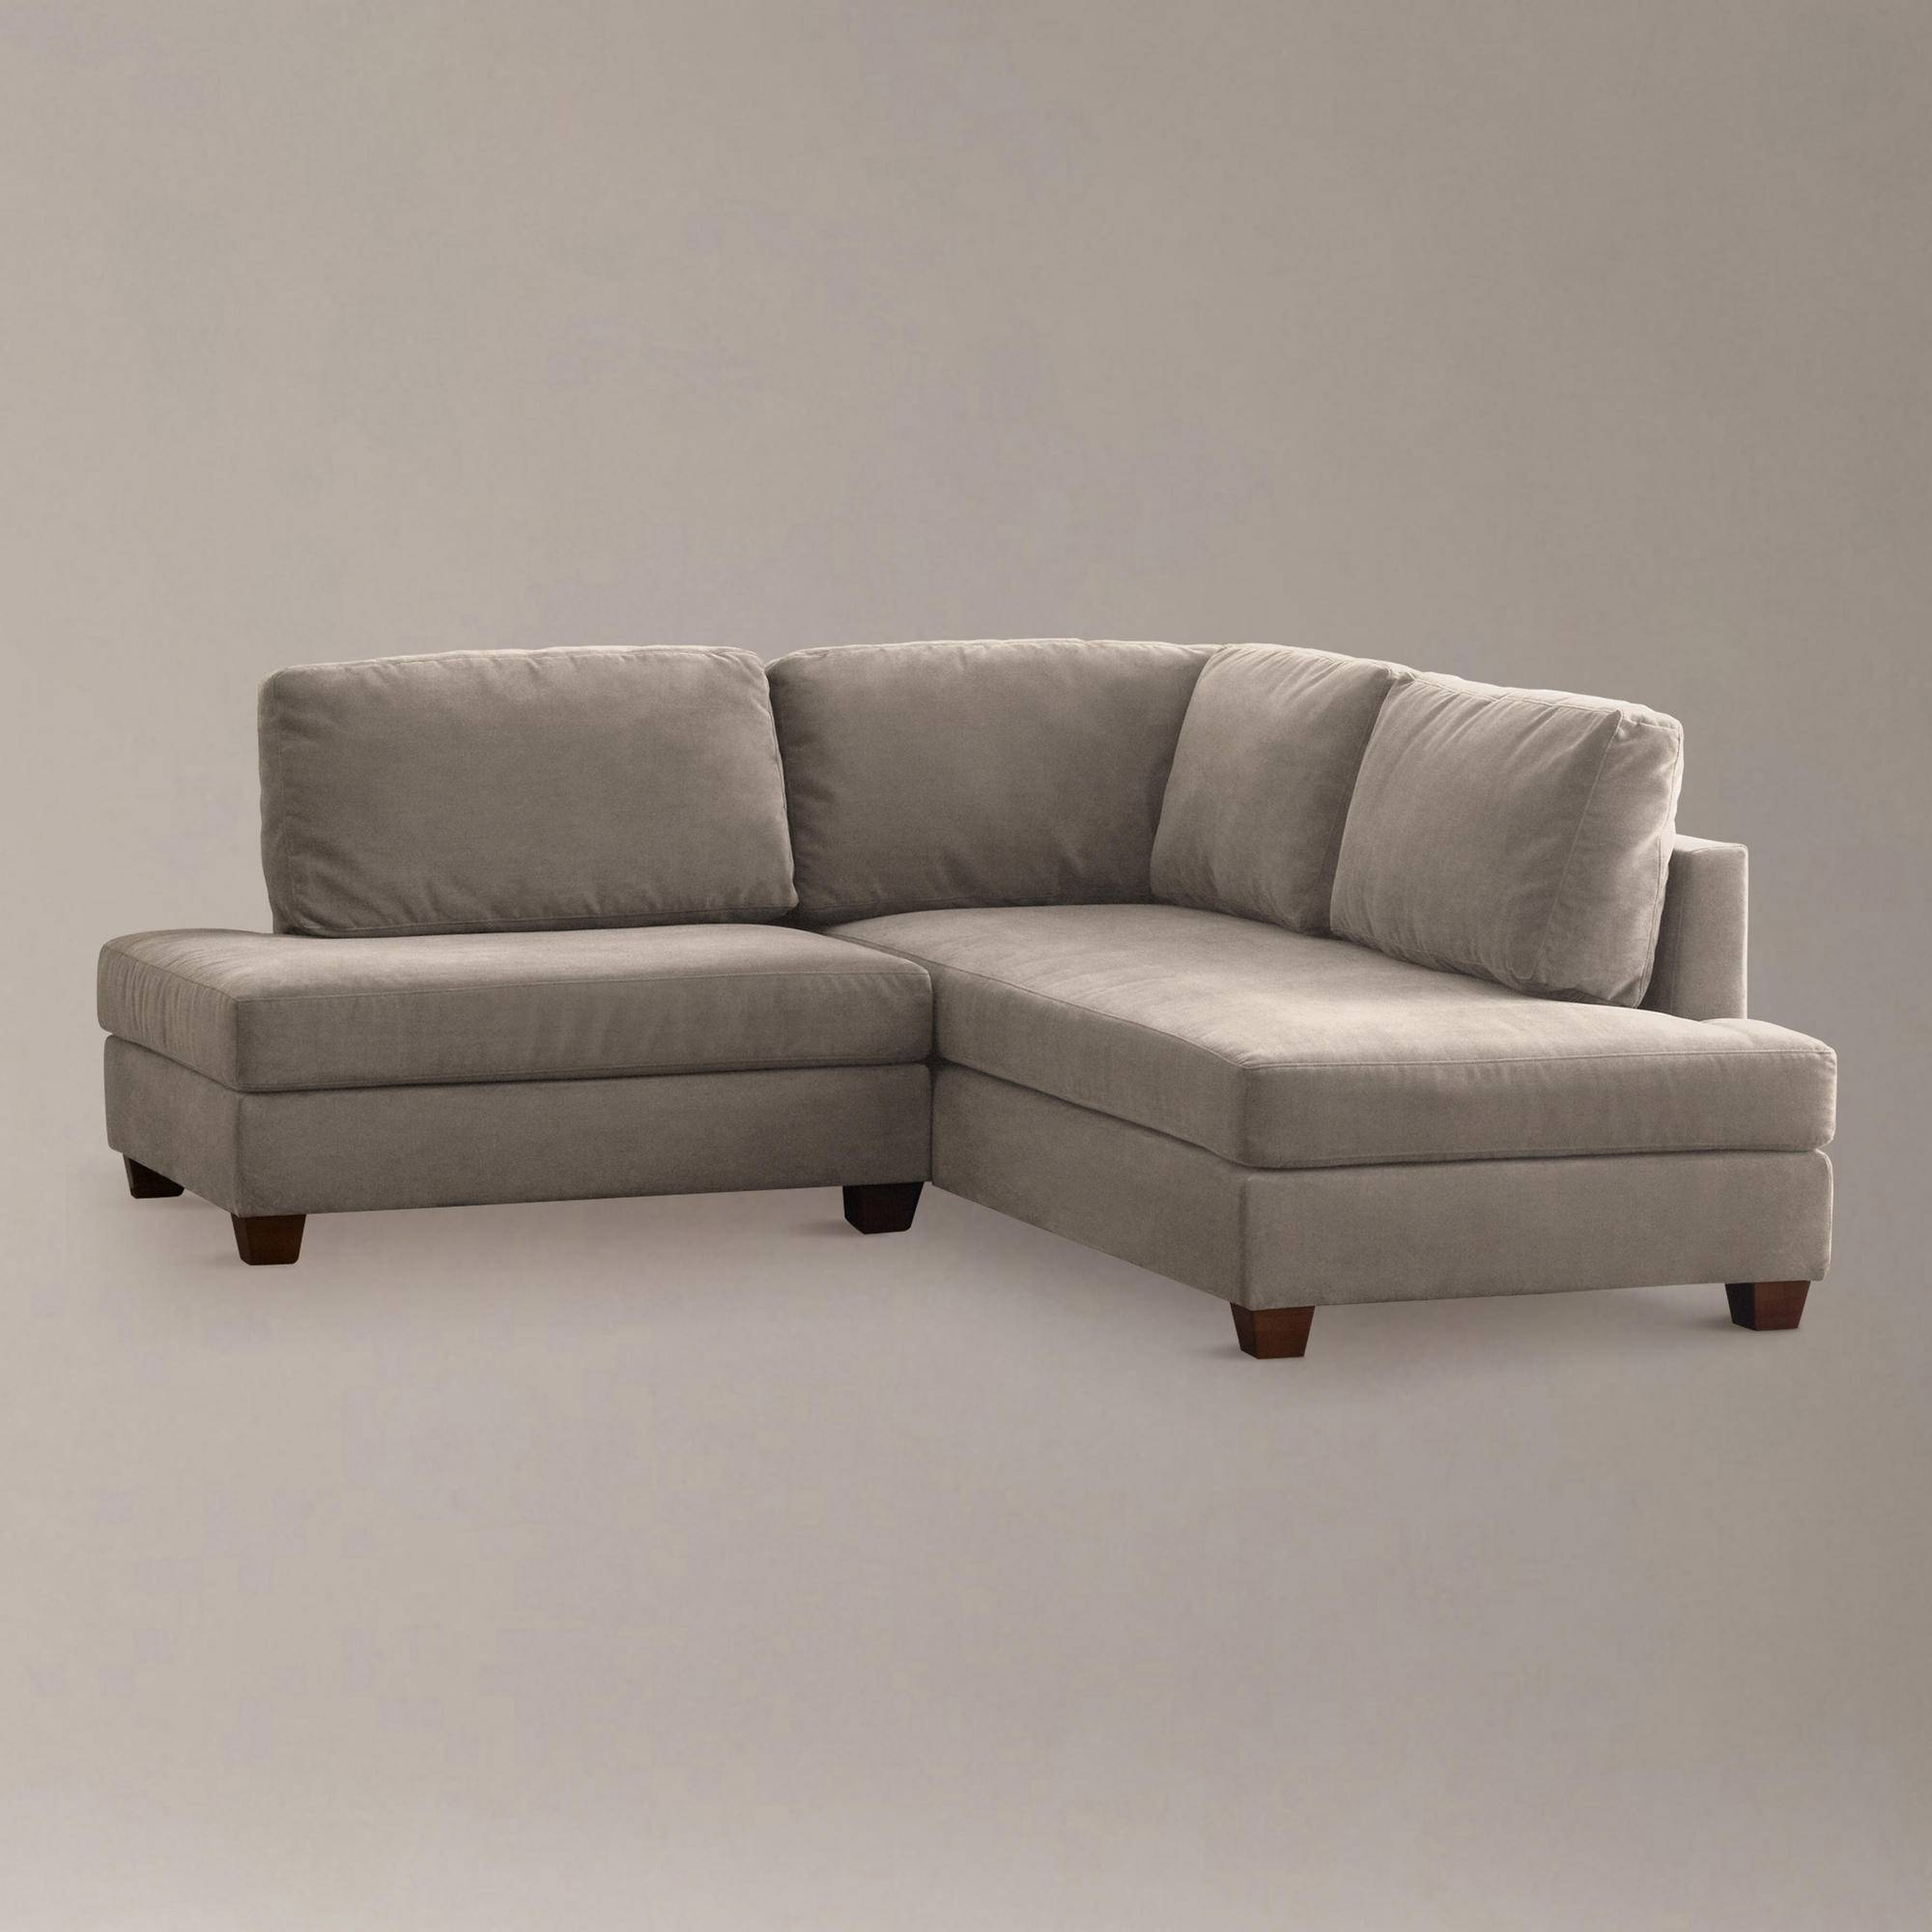 Furniture: Costco Sofas Sectionals | Sofa Sectionals | Small inside Small L-Shaped Sectional Sofas (Image 7 of 15)